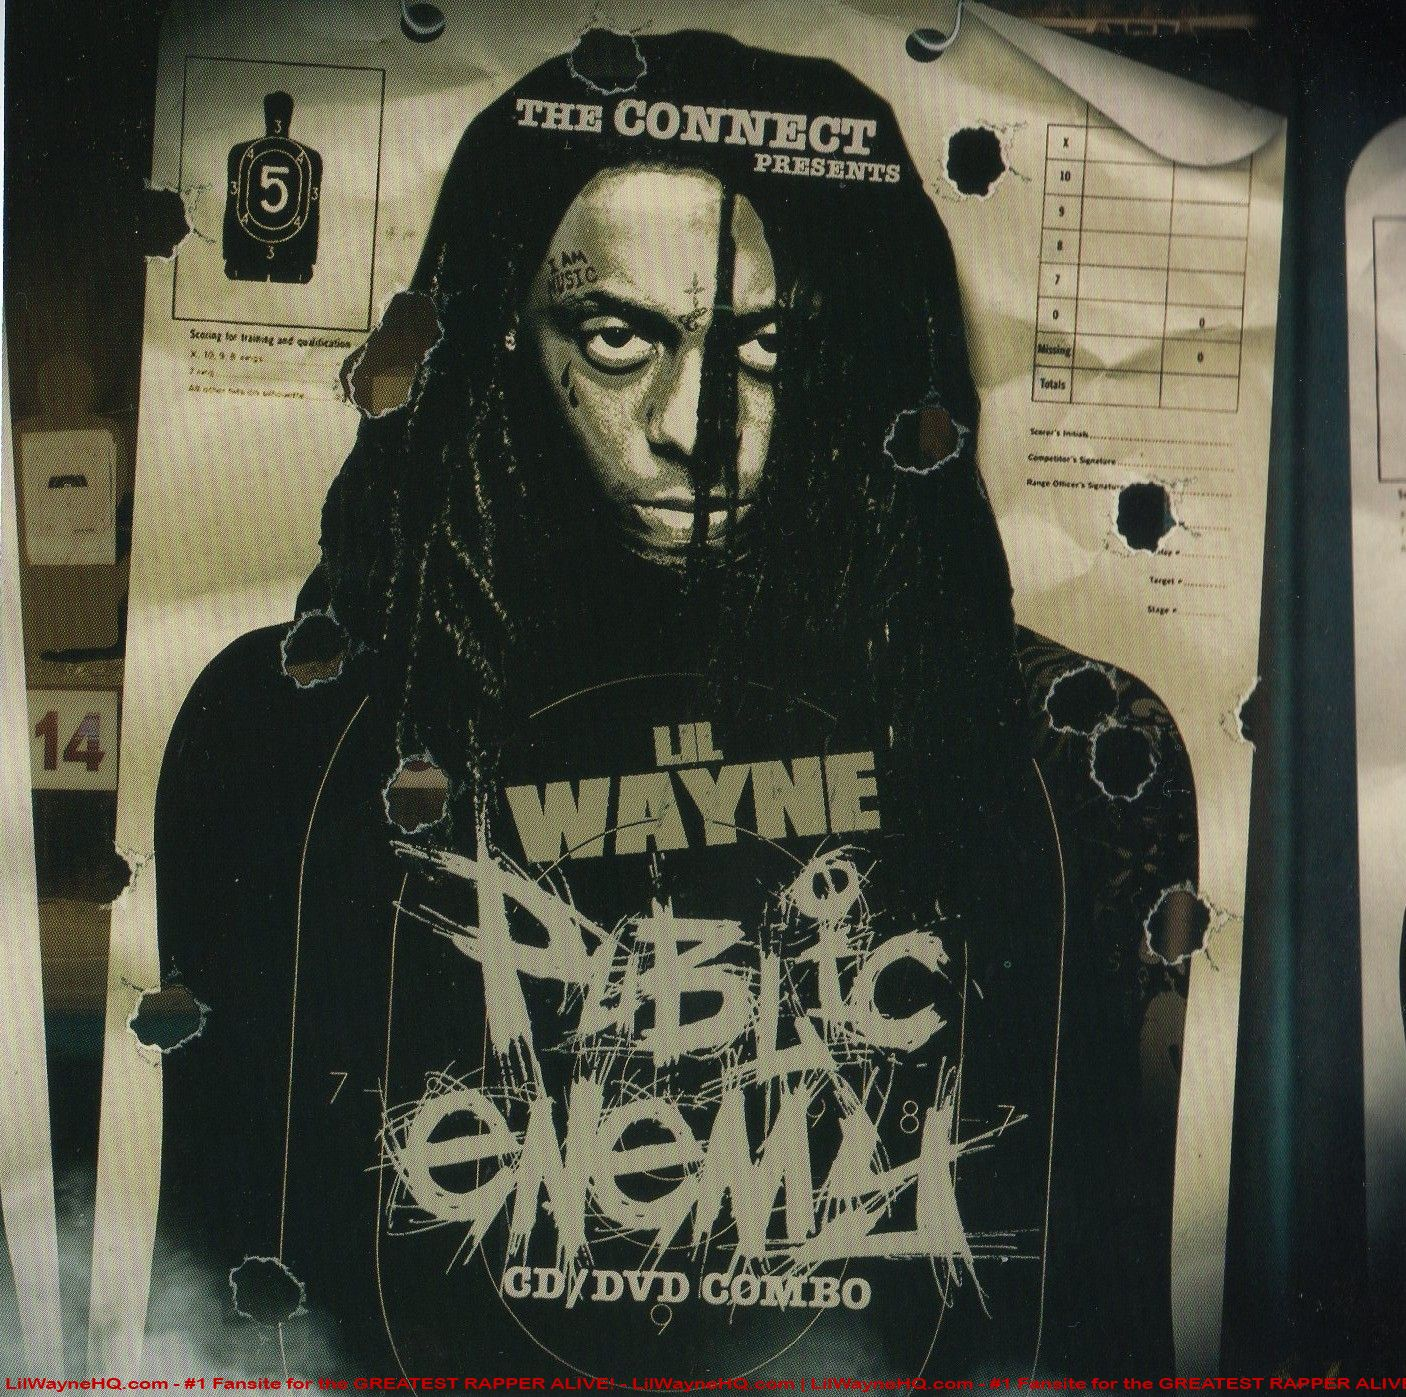 Lil wayne public enemy mixtape download